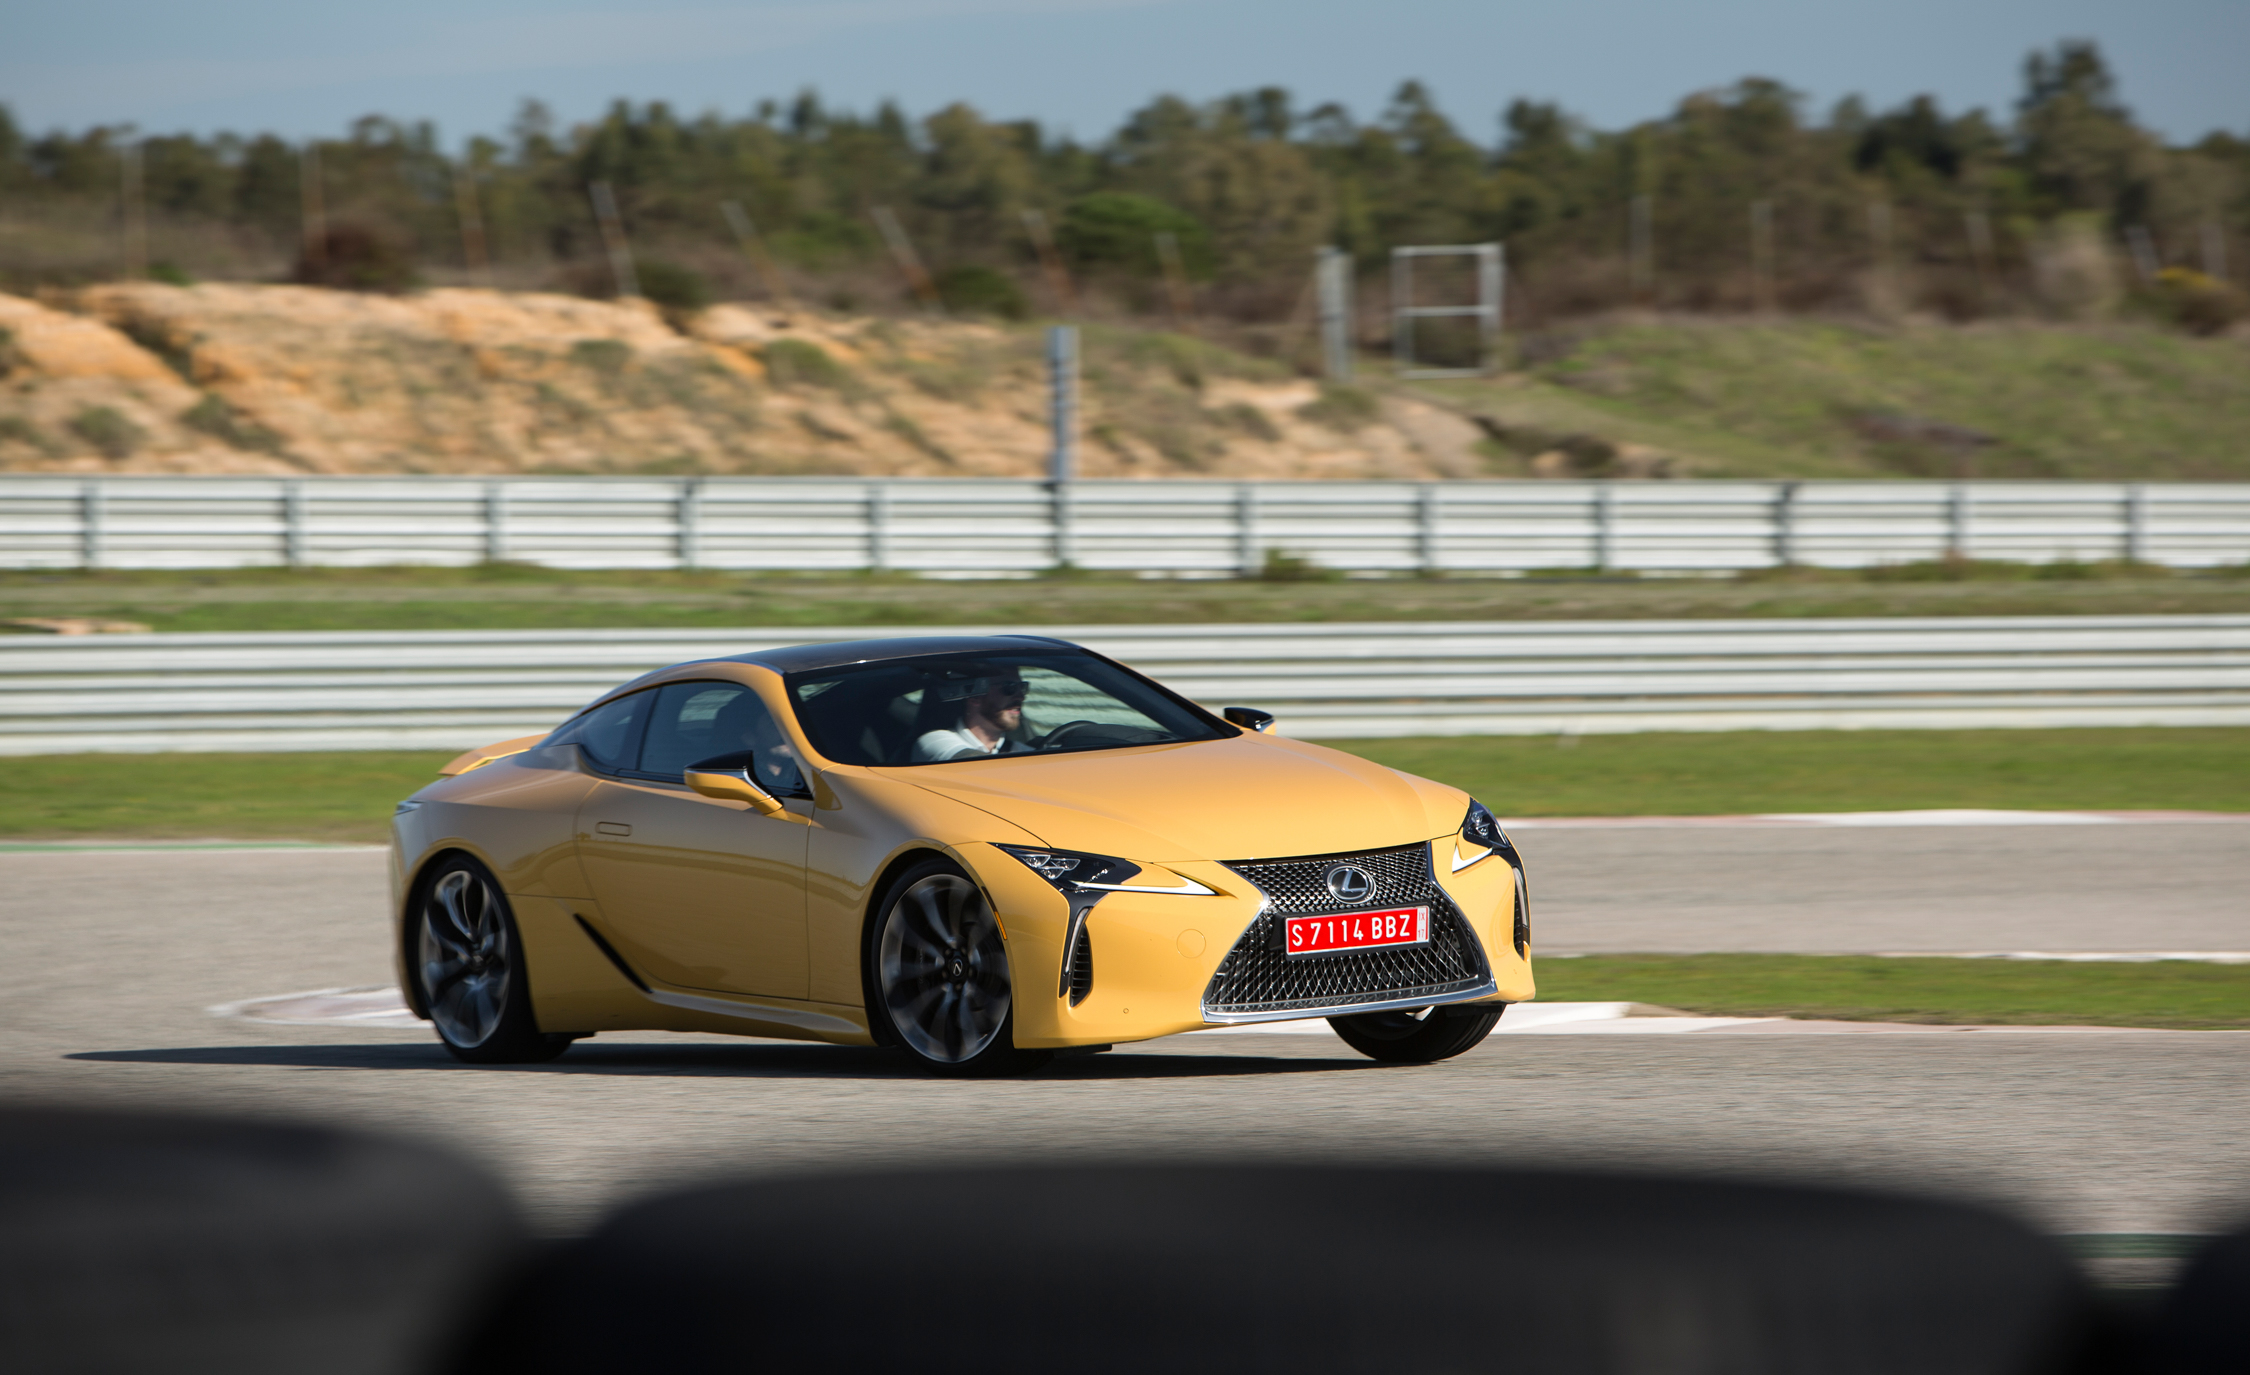 2018 Lexus Lc 500 Yellow Test Drive Performance (Photo 32 of 84)